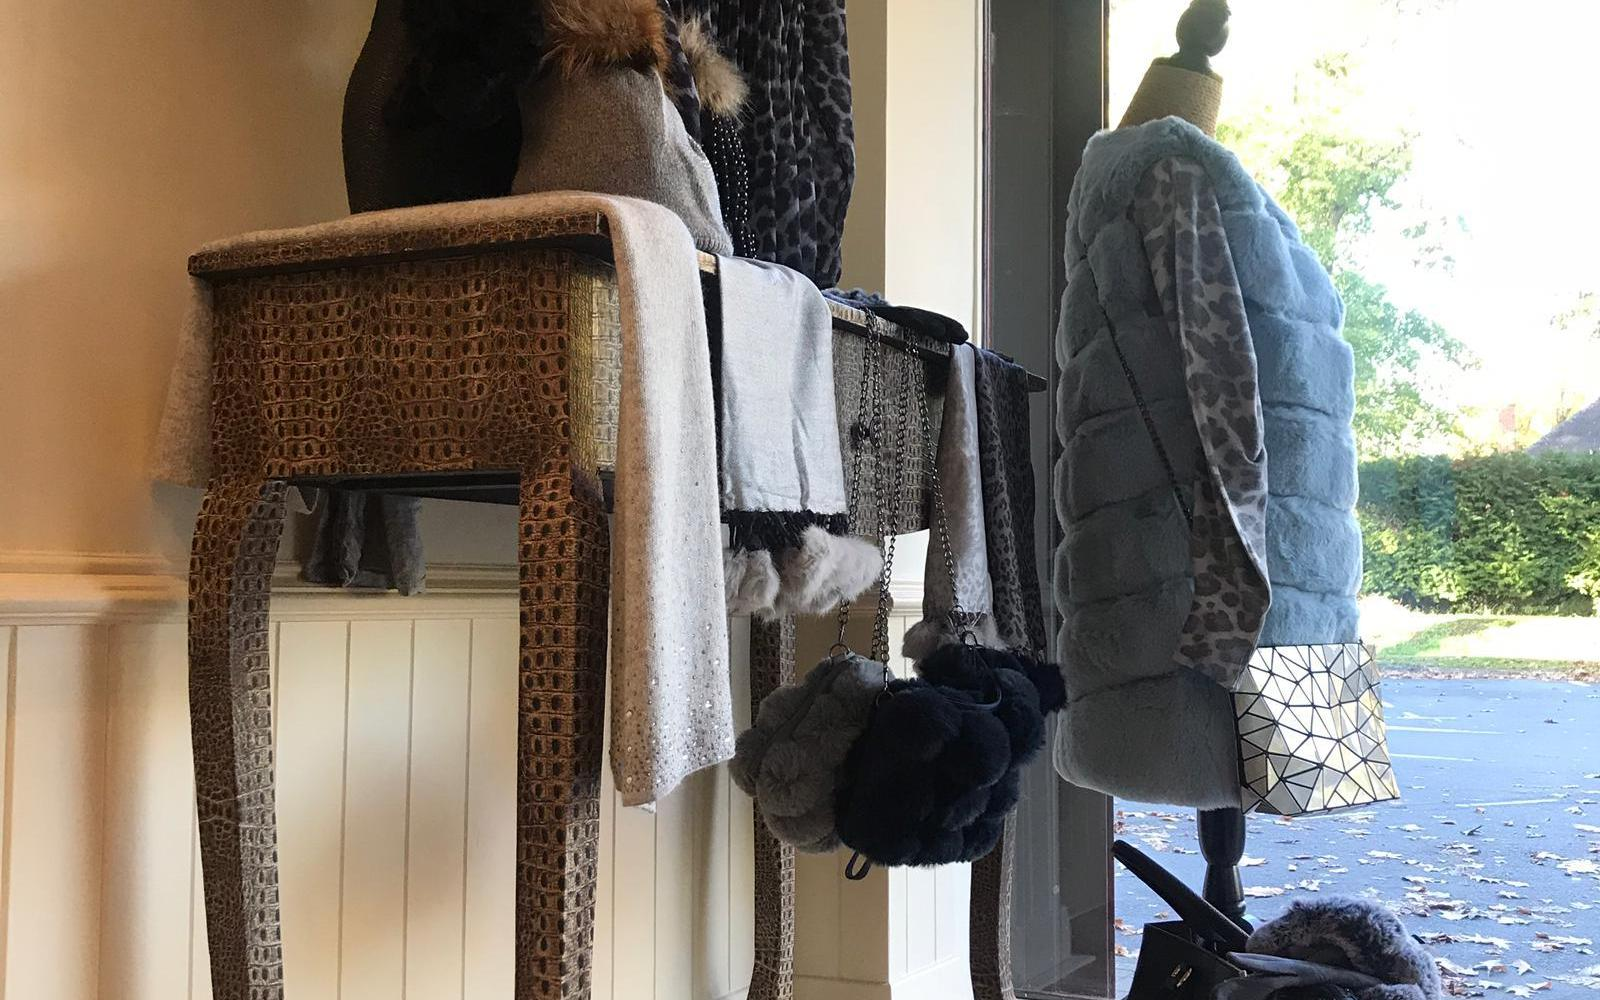 Clothes at Harringtons Drycleaners